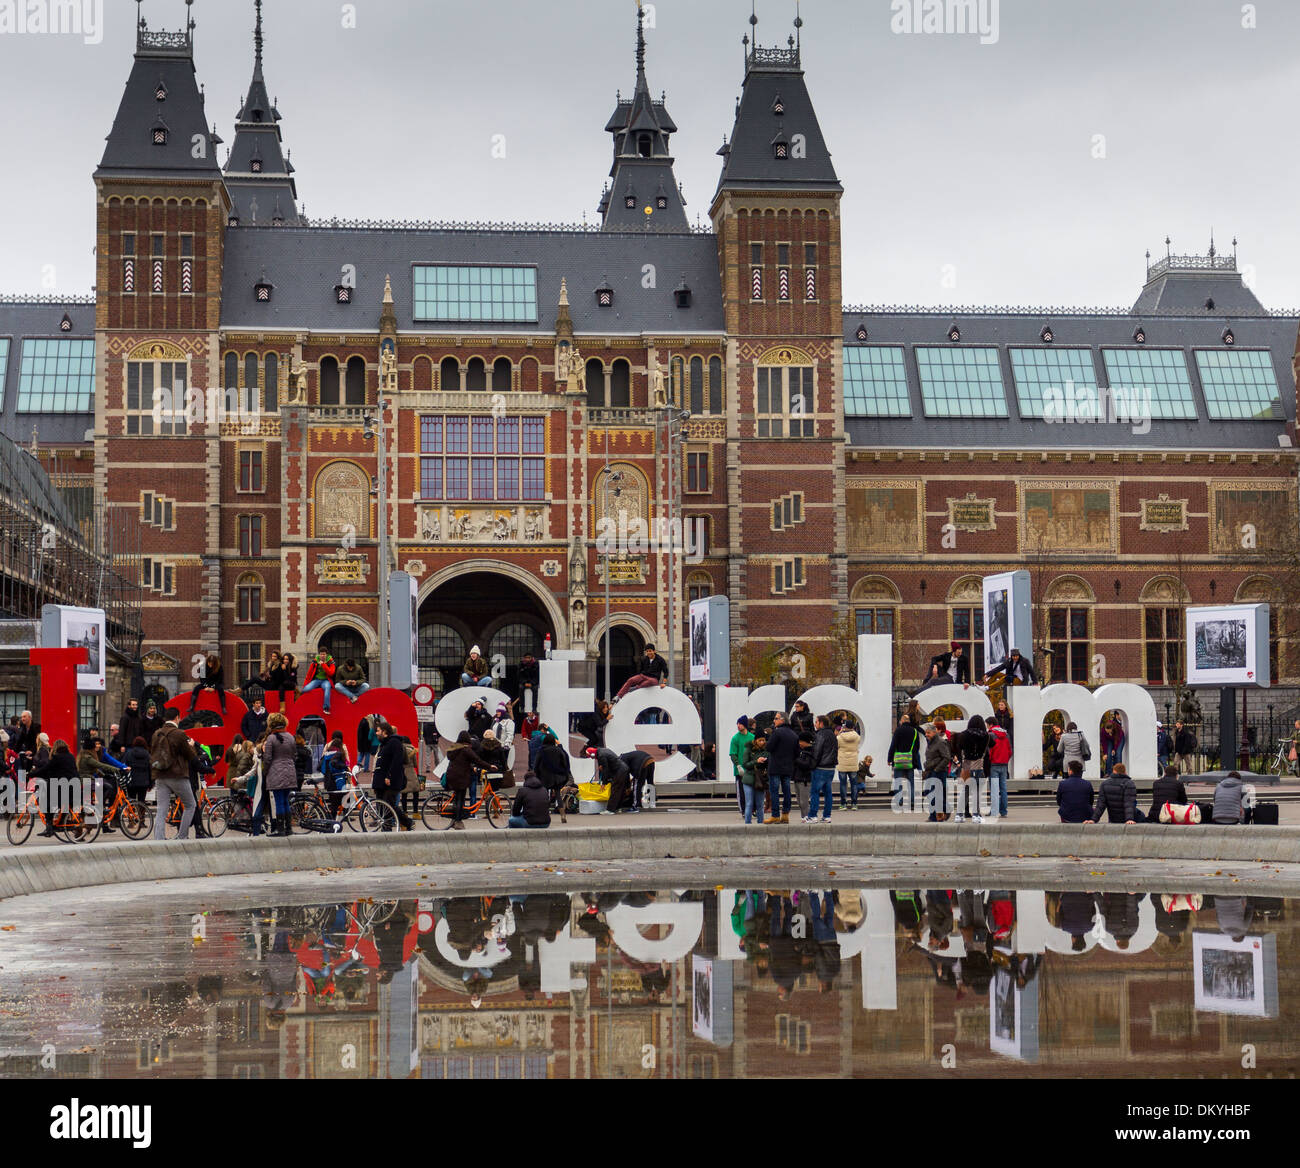 AMSTERDAM VISITORS OUTSIDE THE RIJKSMUSEUM WITH THE LARGE LETTERS SPELLING OUT  IAMSTERDAM - Stock Image